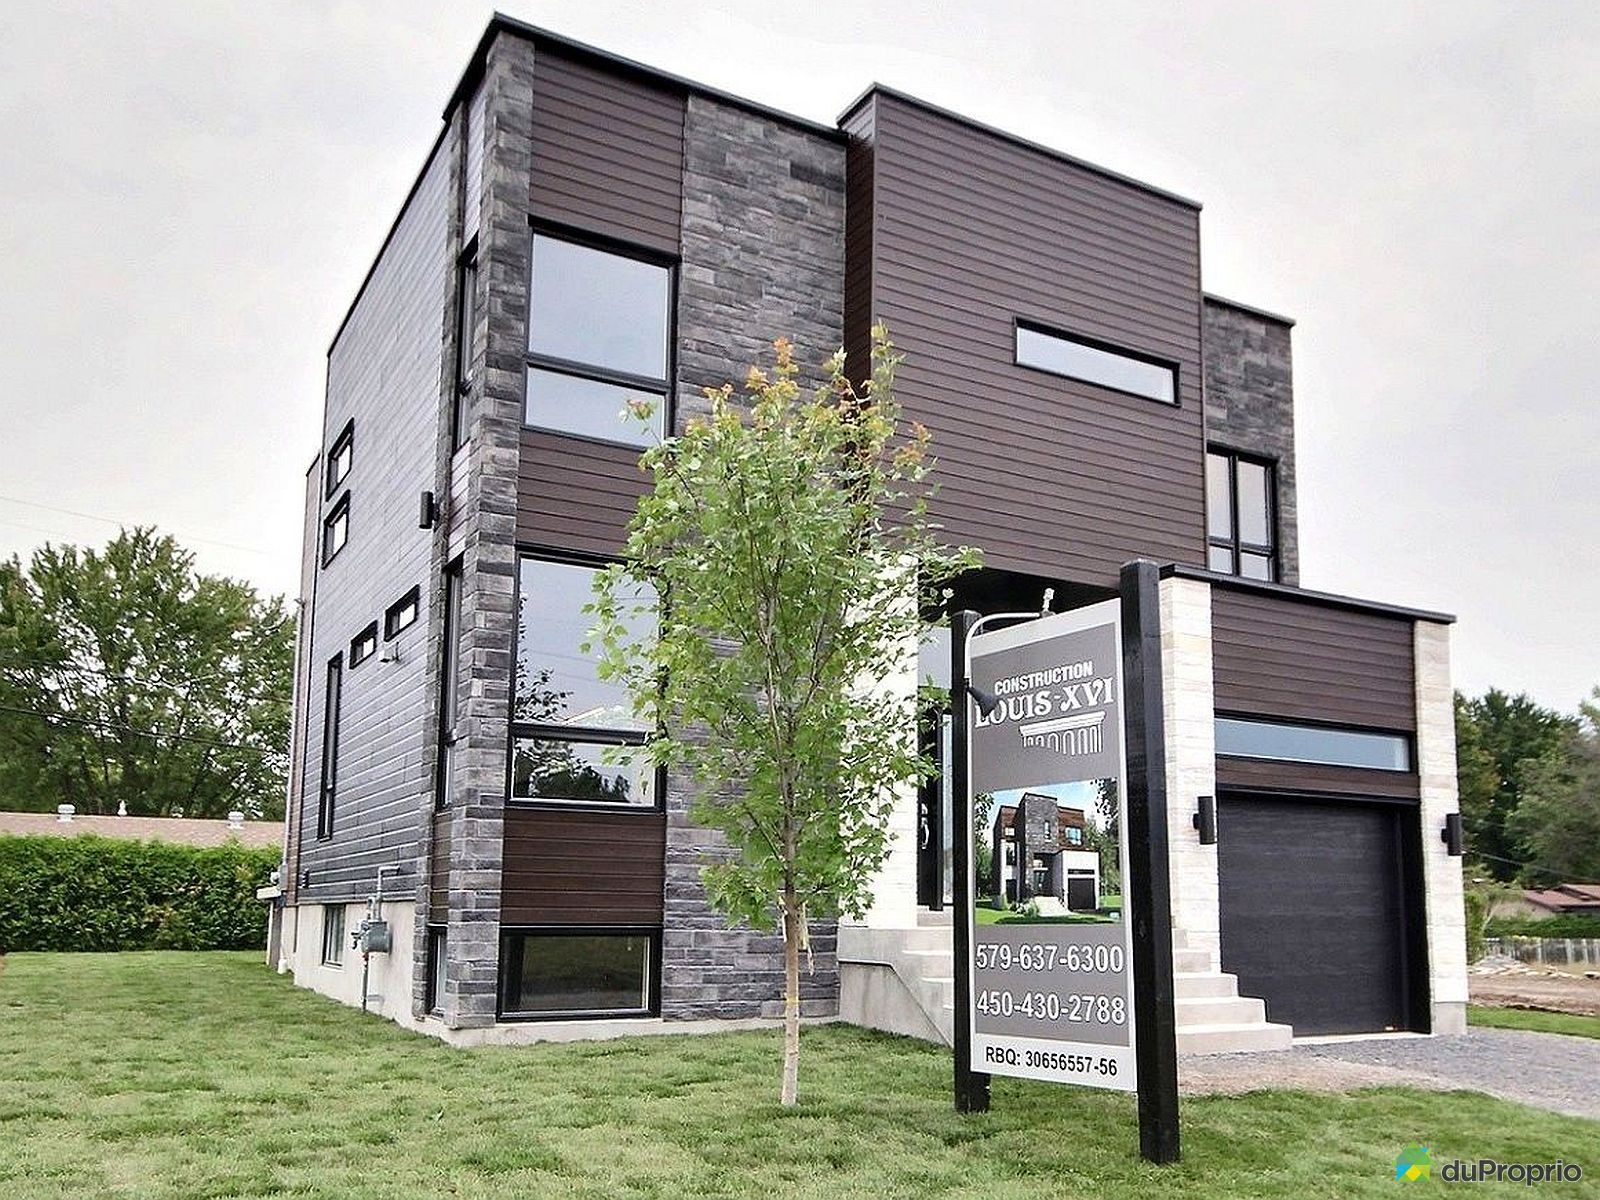 Boisbriand Real Estate for sale COMMISSION-FREE | DuProprio